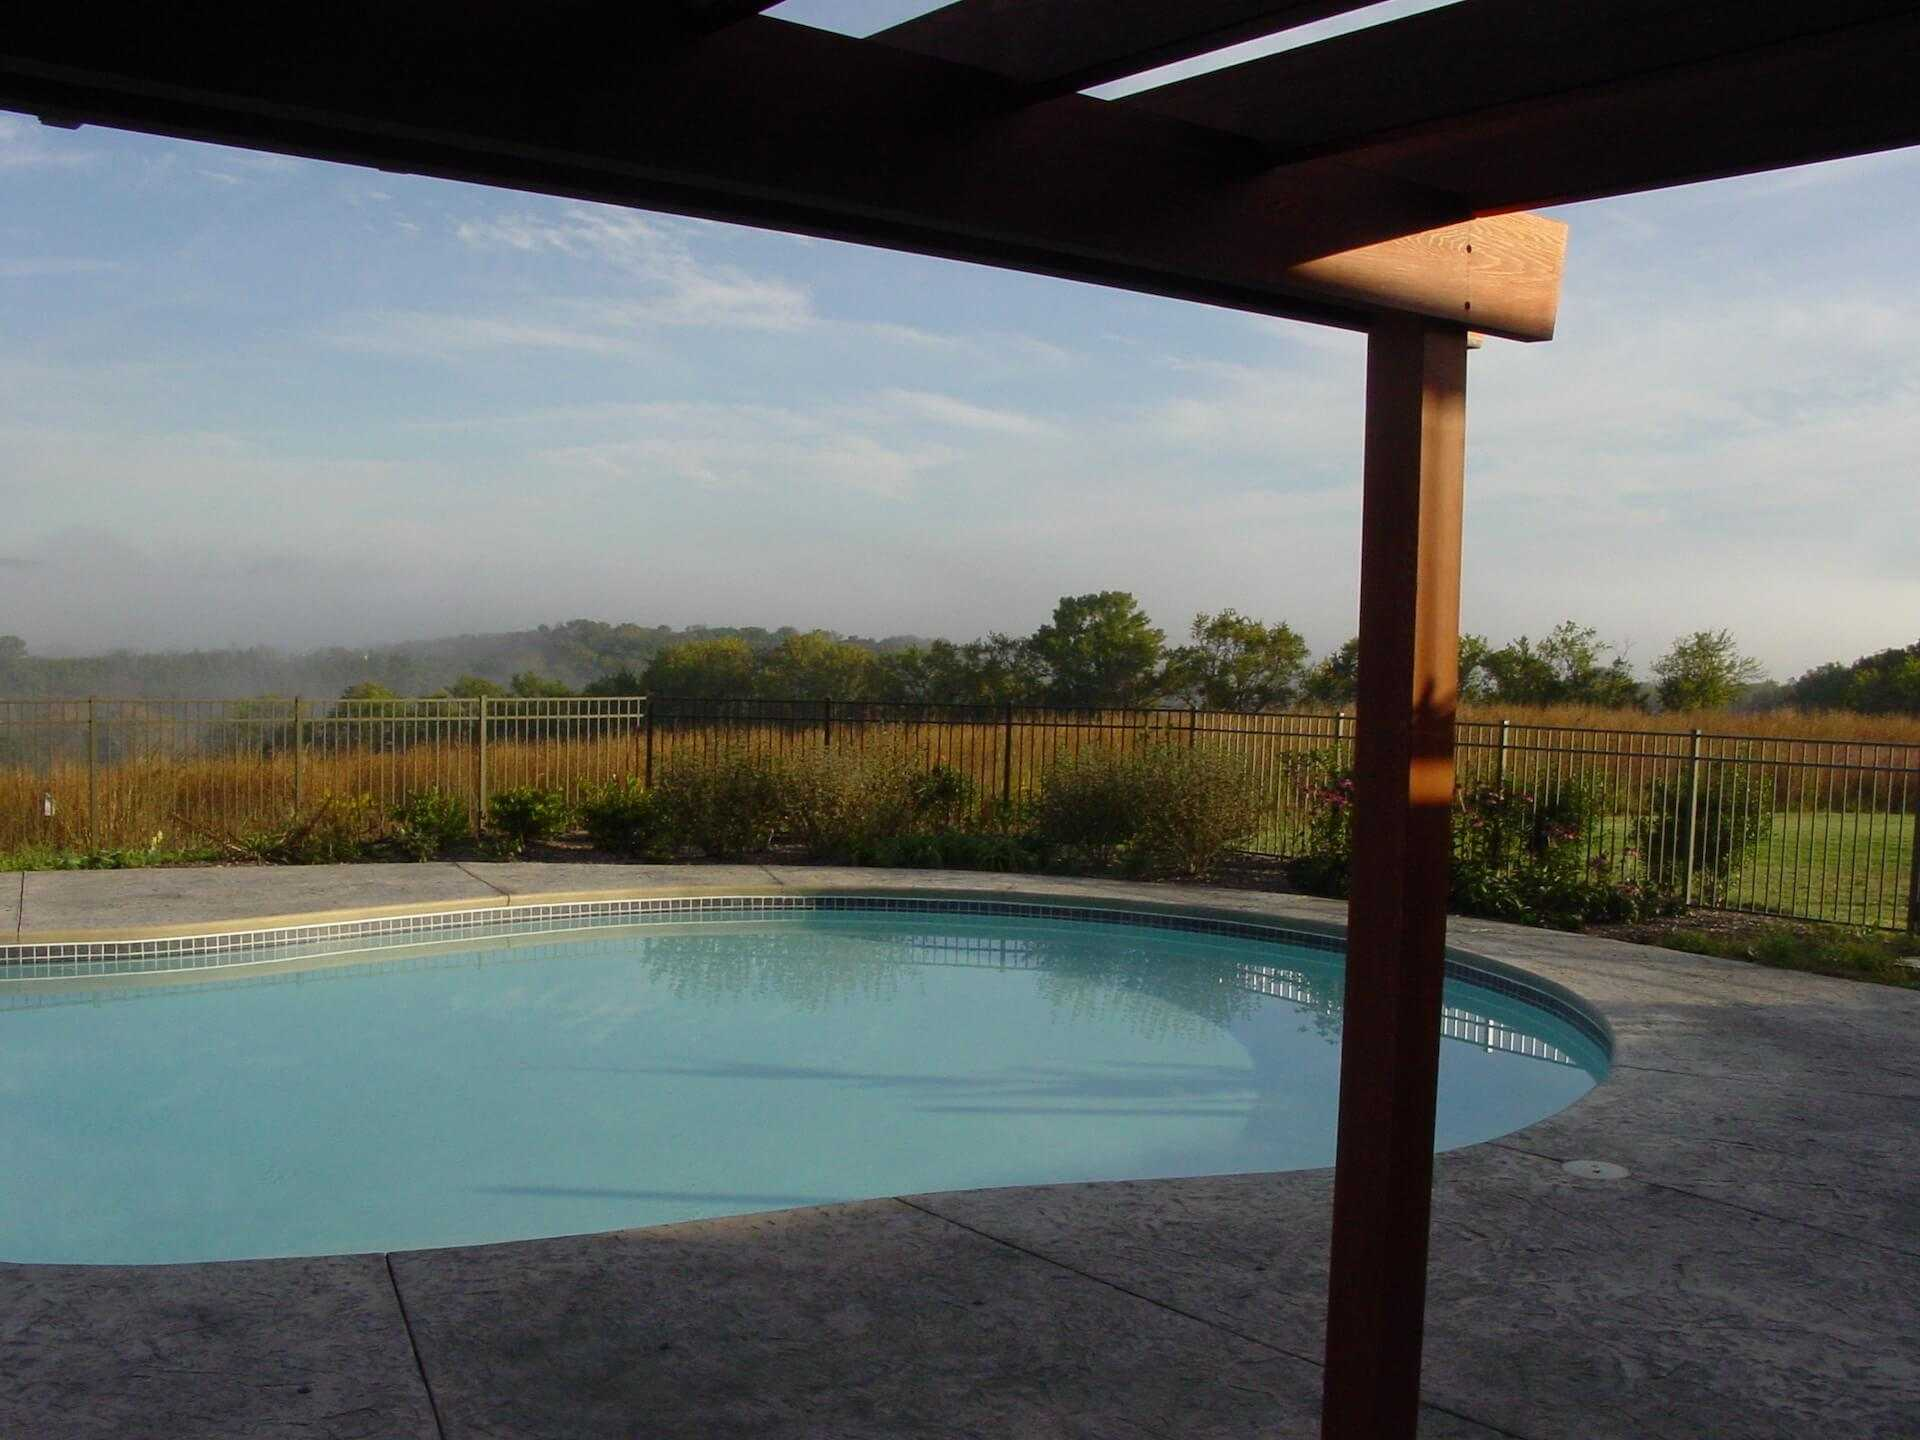 facing out from under the pergola towards the misty meadow